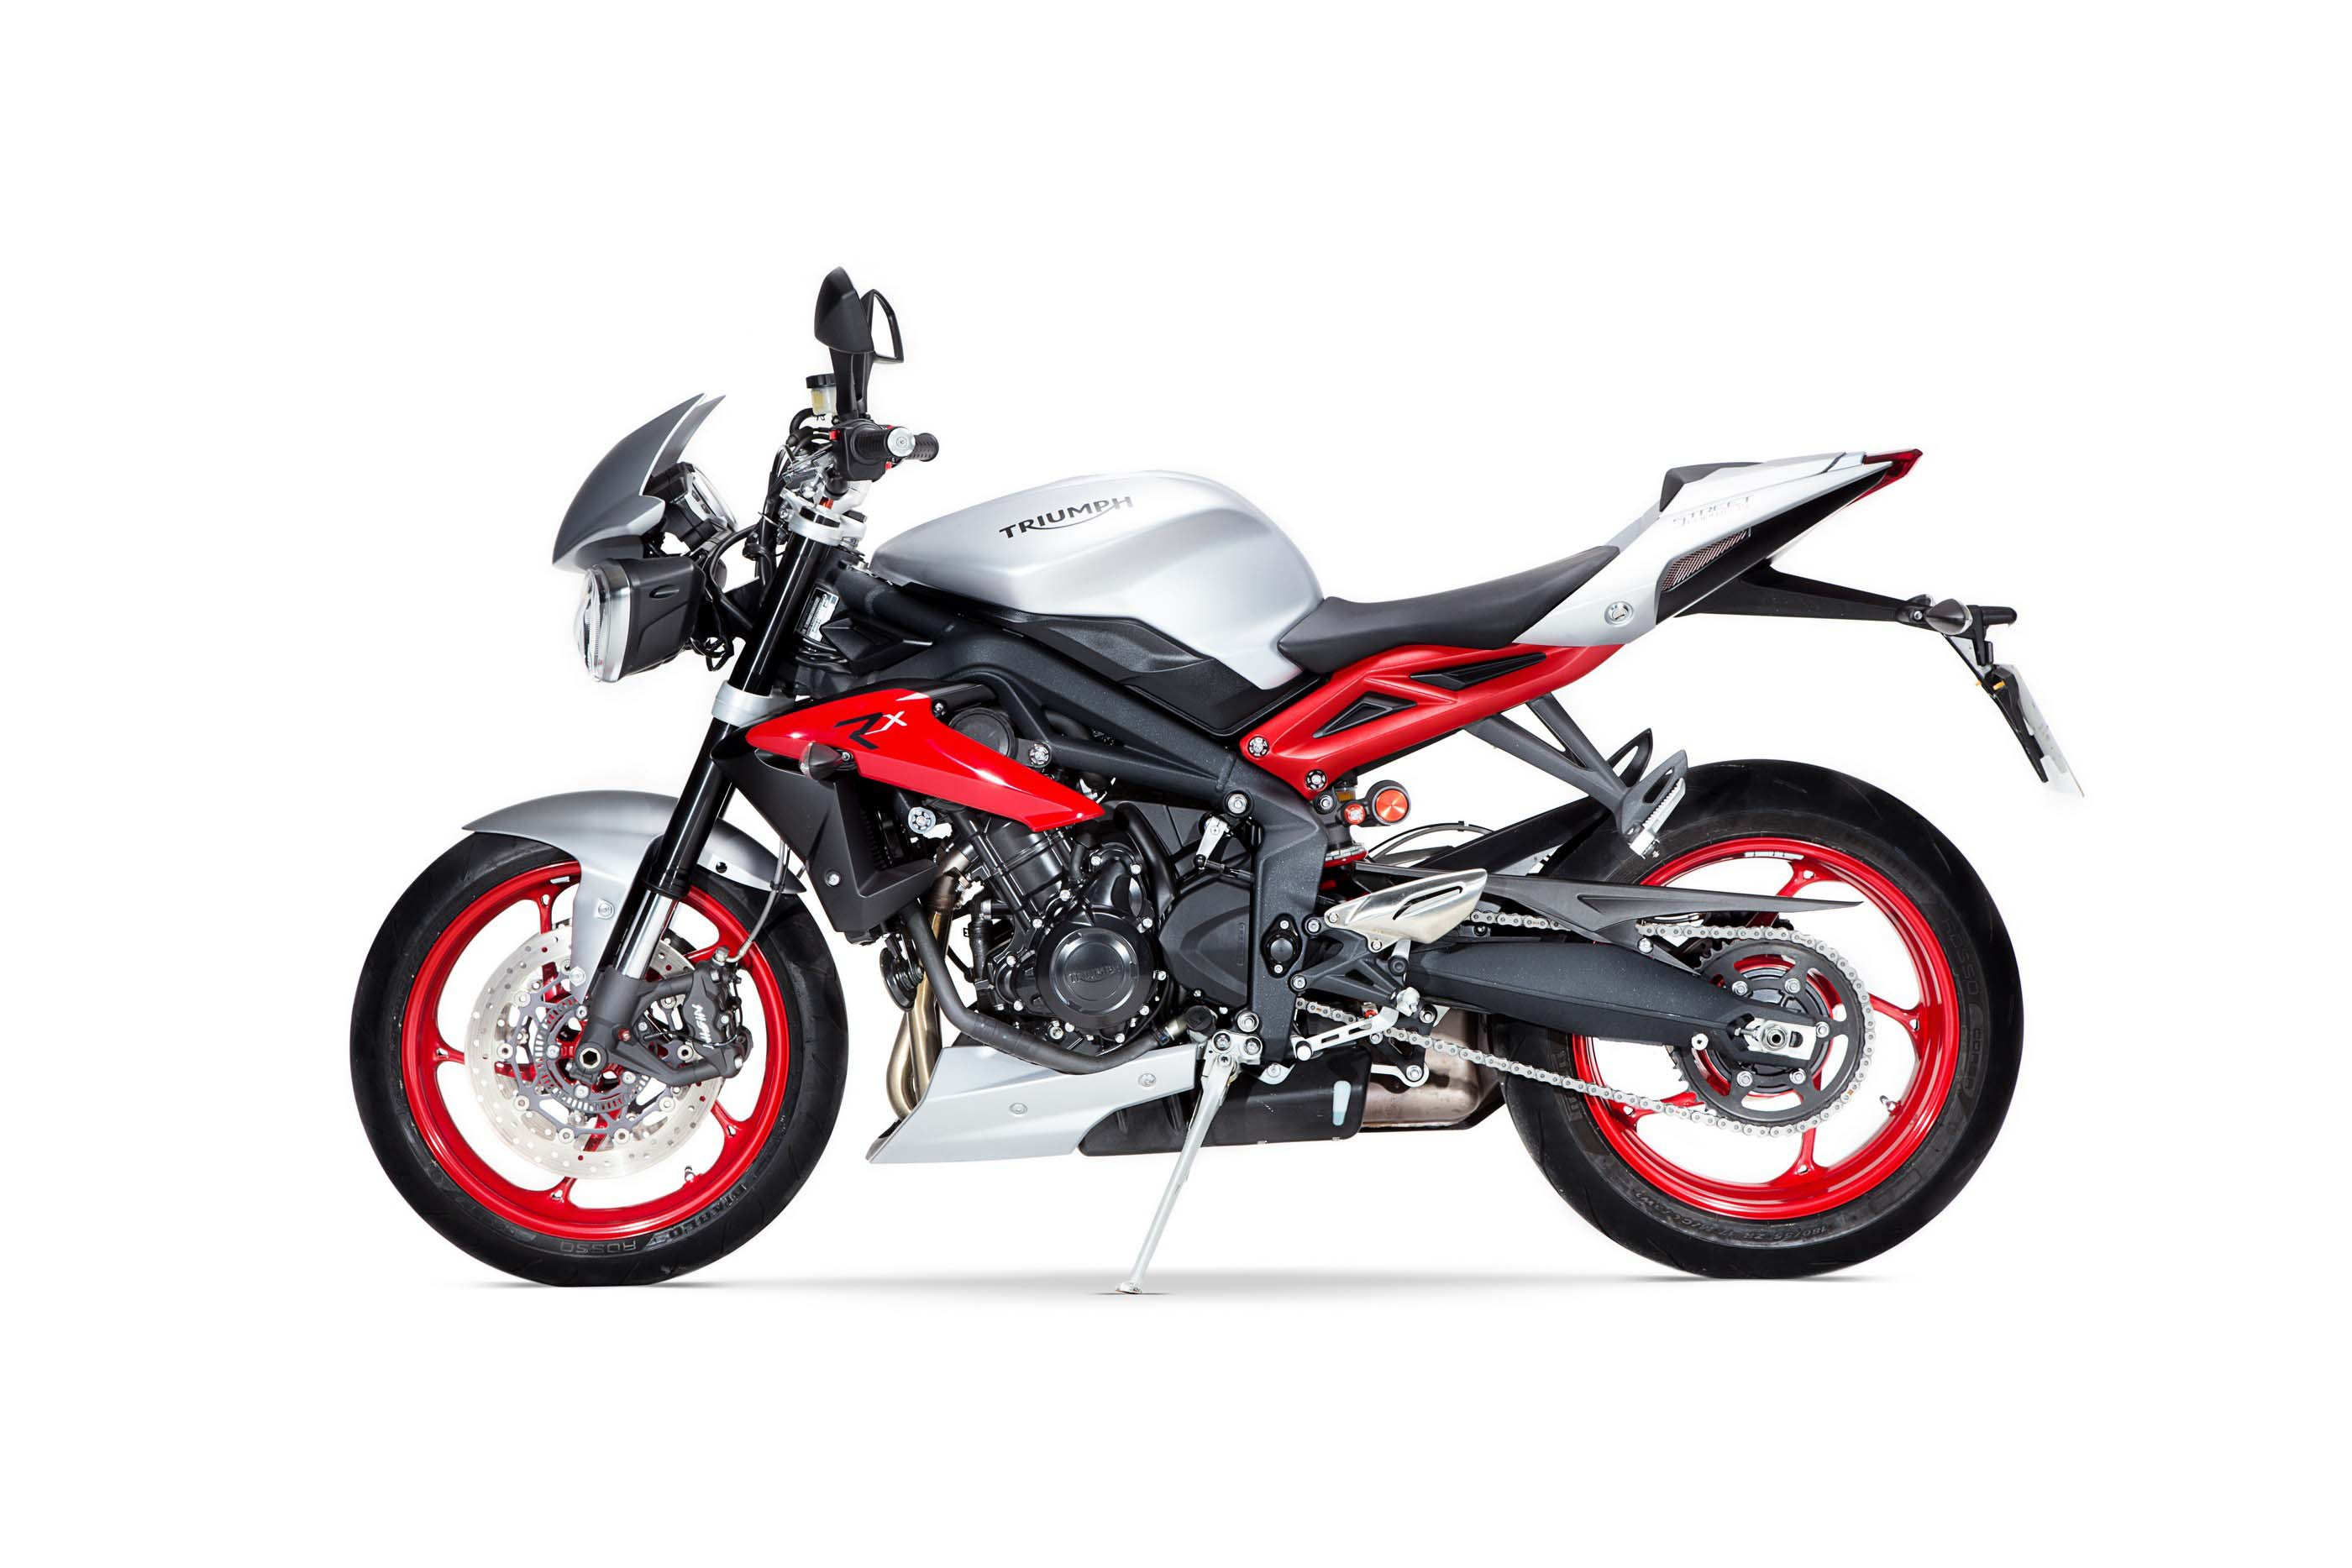 INTERMOT 2014: Triumph Street Triple RX takes cues from its Daytona sibling  - RevZilla